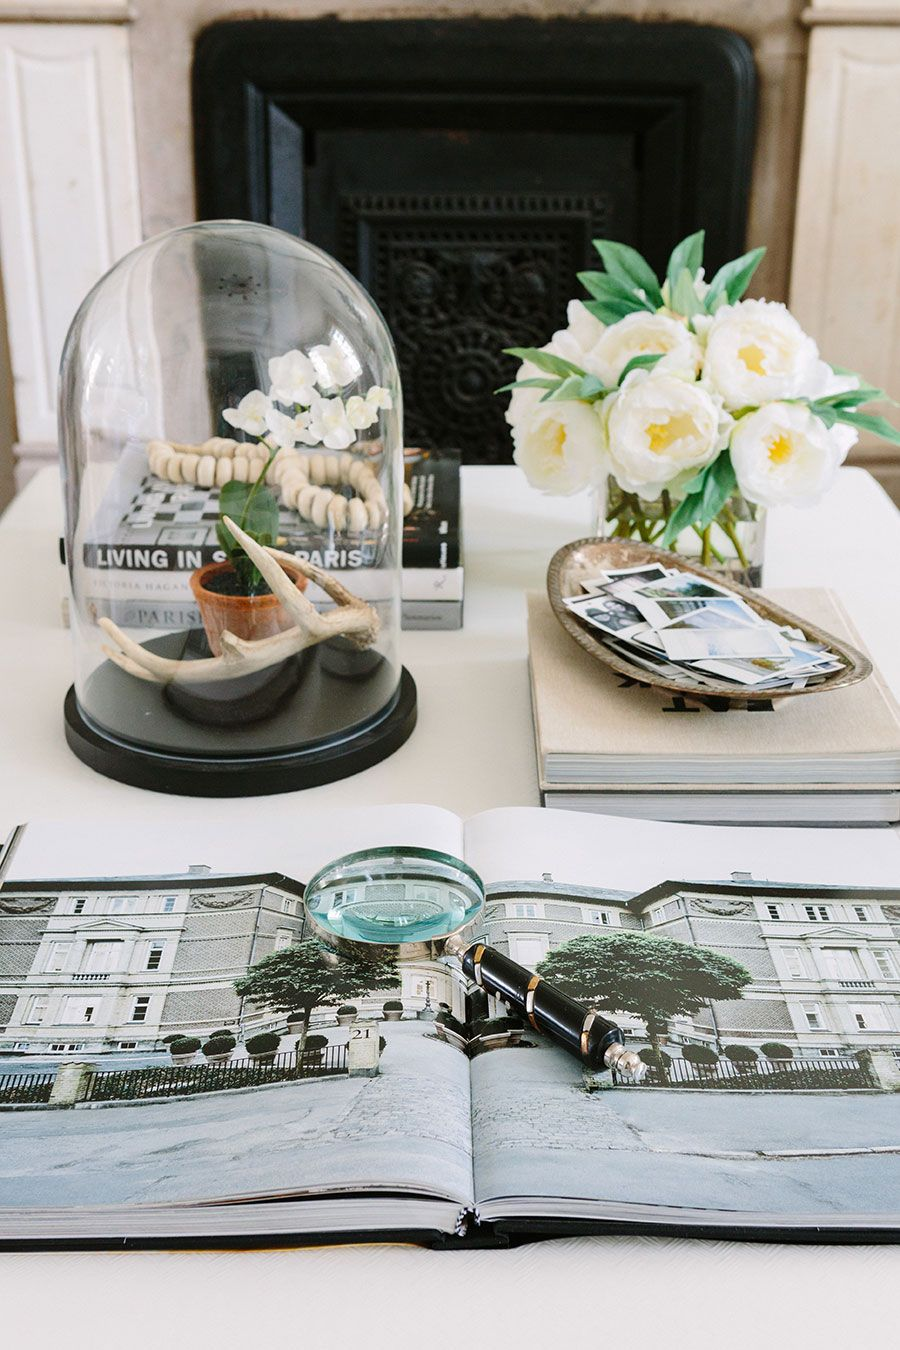 How to Style Your Home 21 Beautiful Coffee Table Books